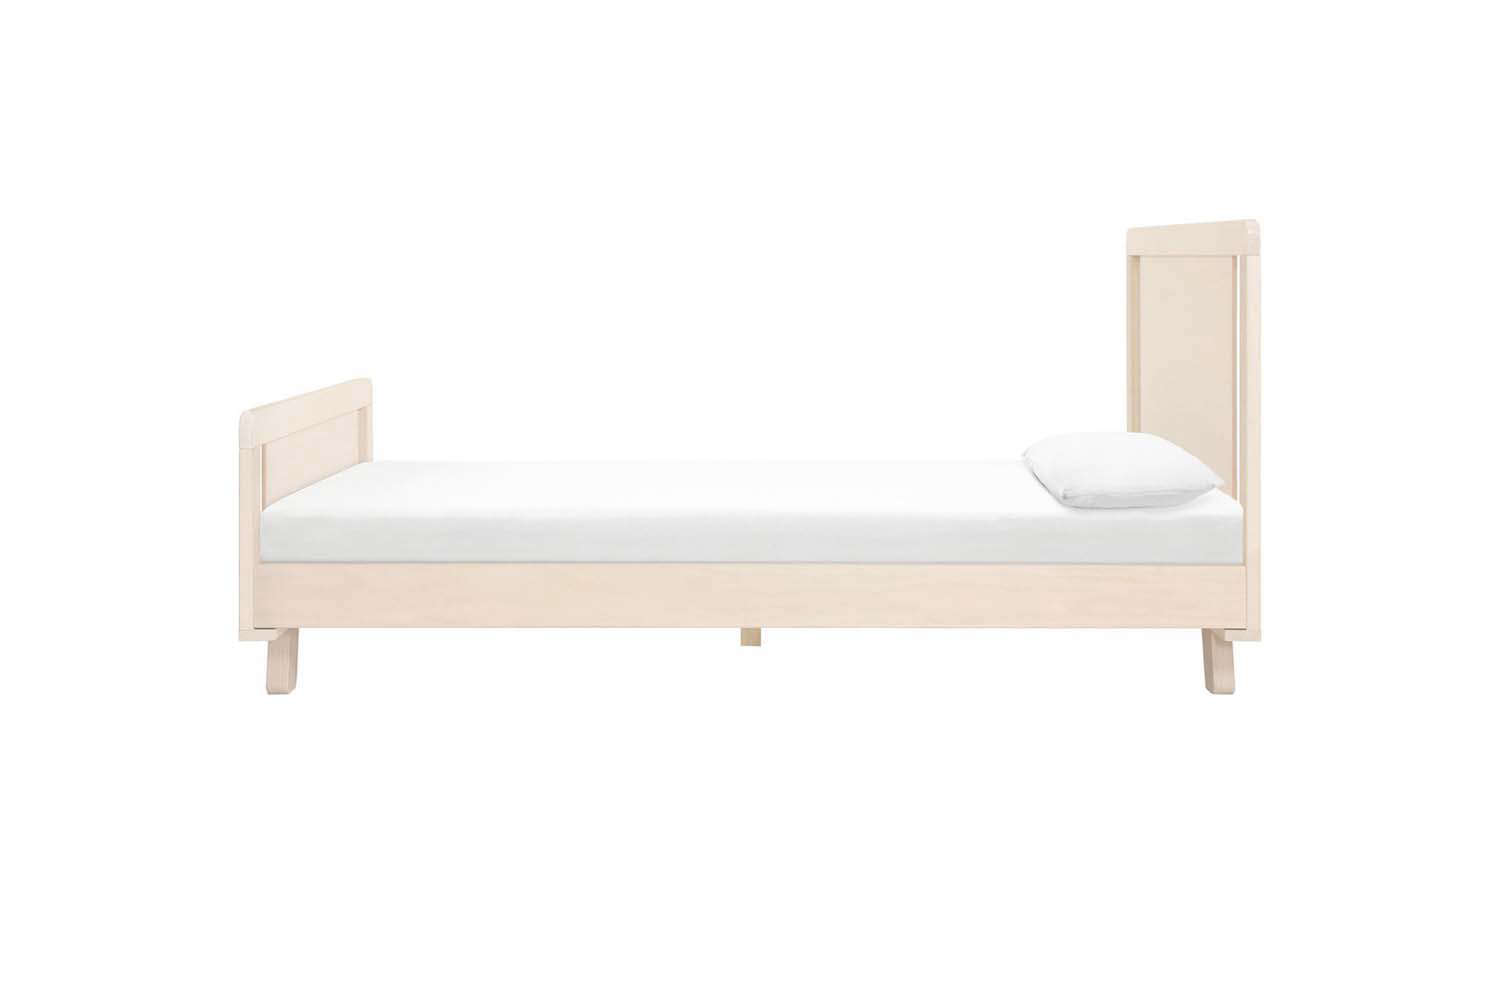 The Babyletto Hudson Platform Twin Bed in Washed White is $399 at Maisonette.